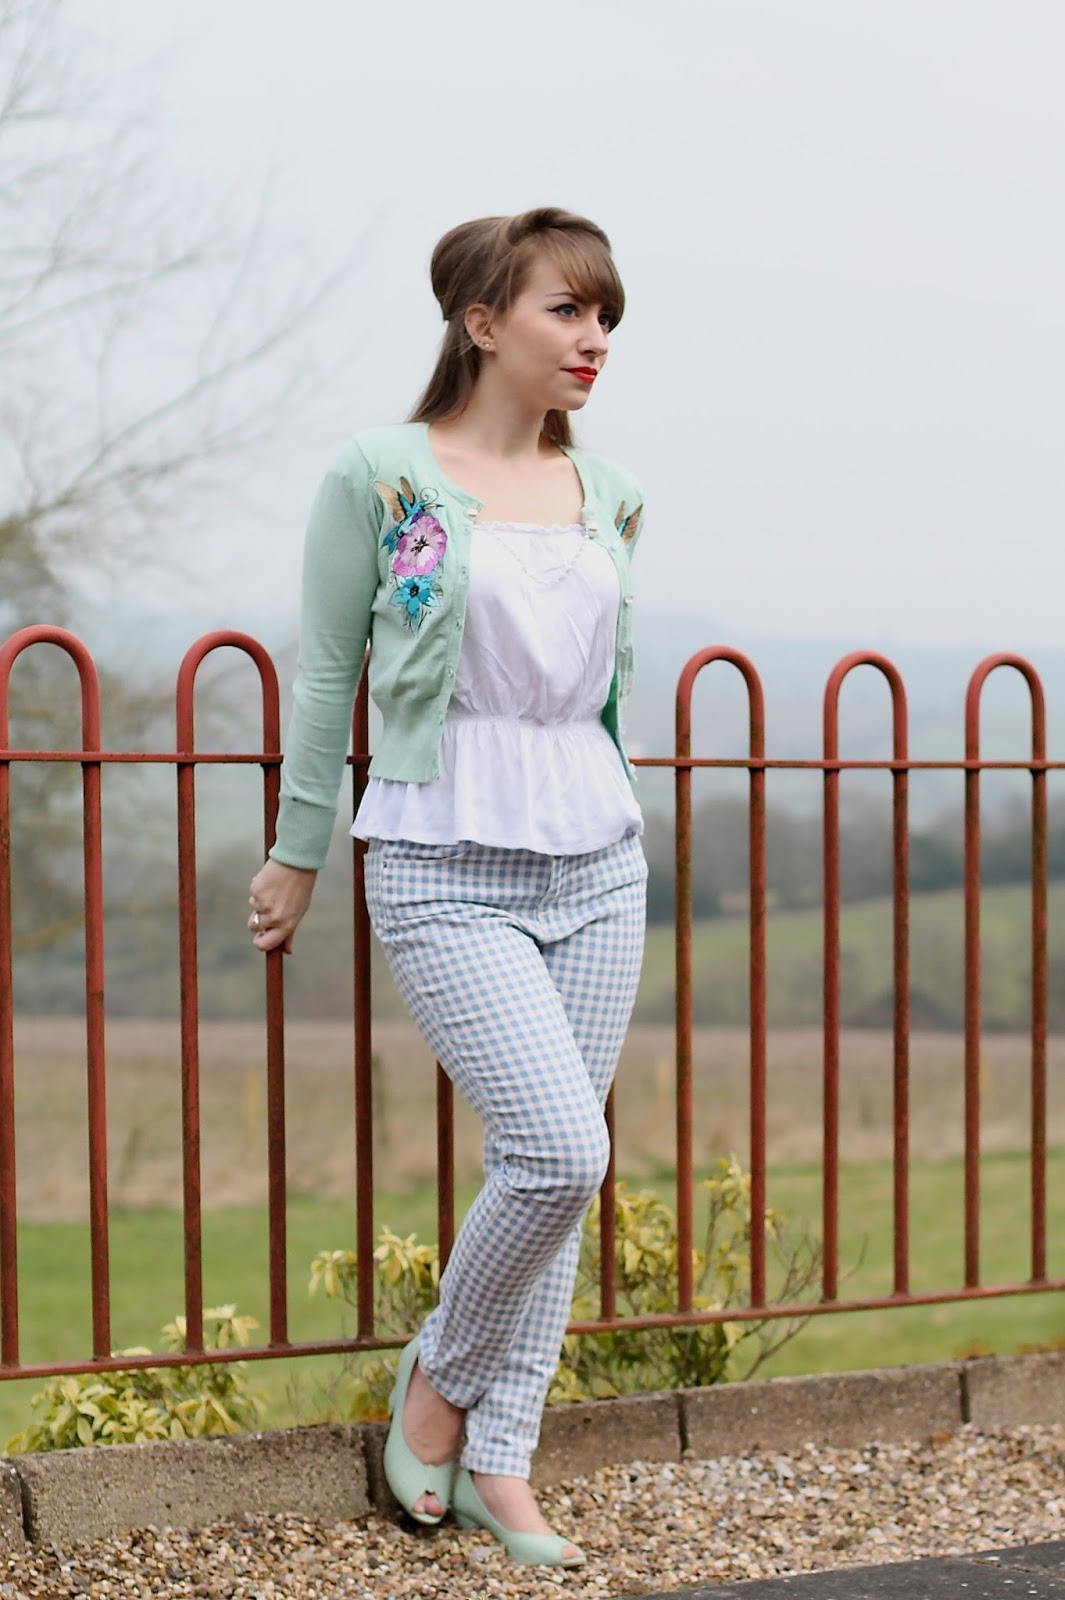 Vintage inspired spring outfit with gingham pants and mint green